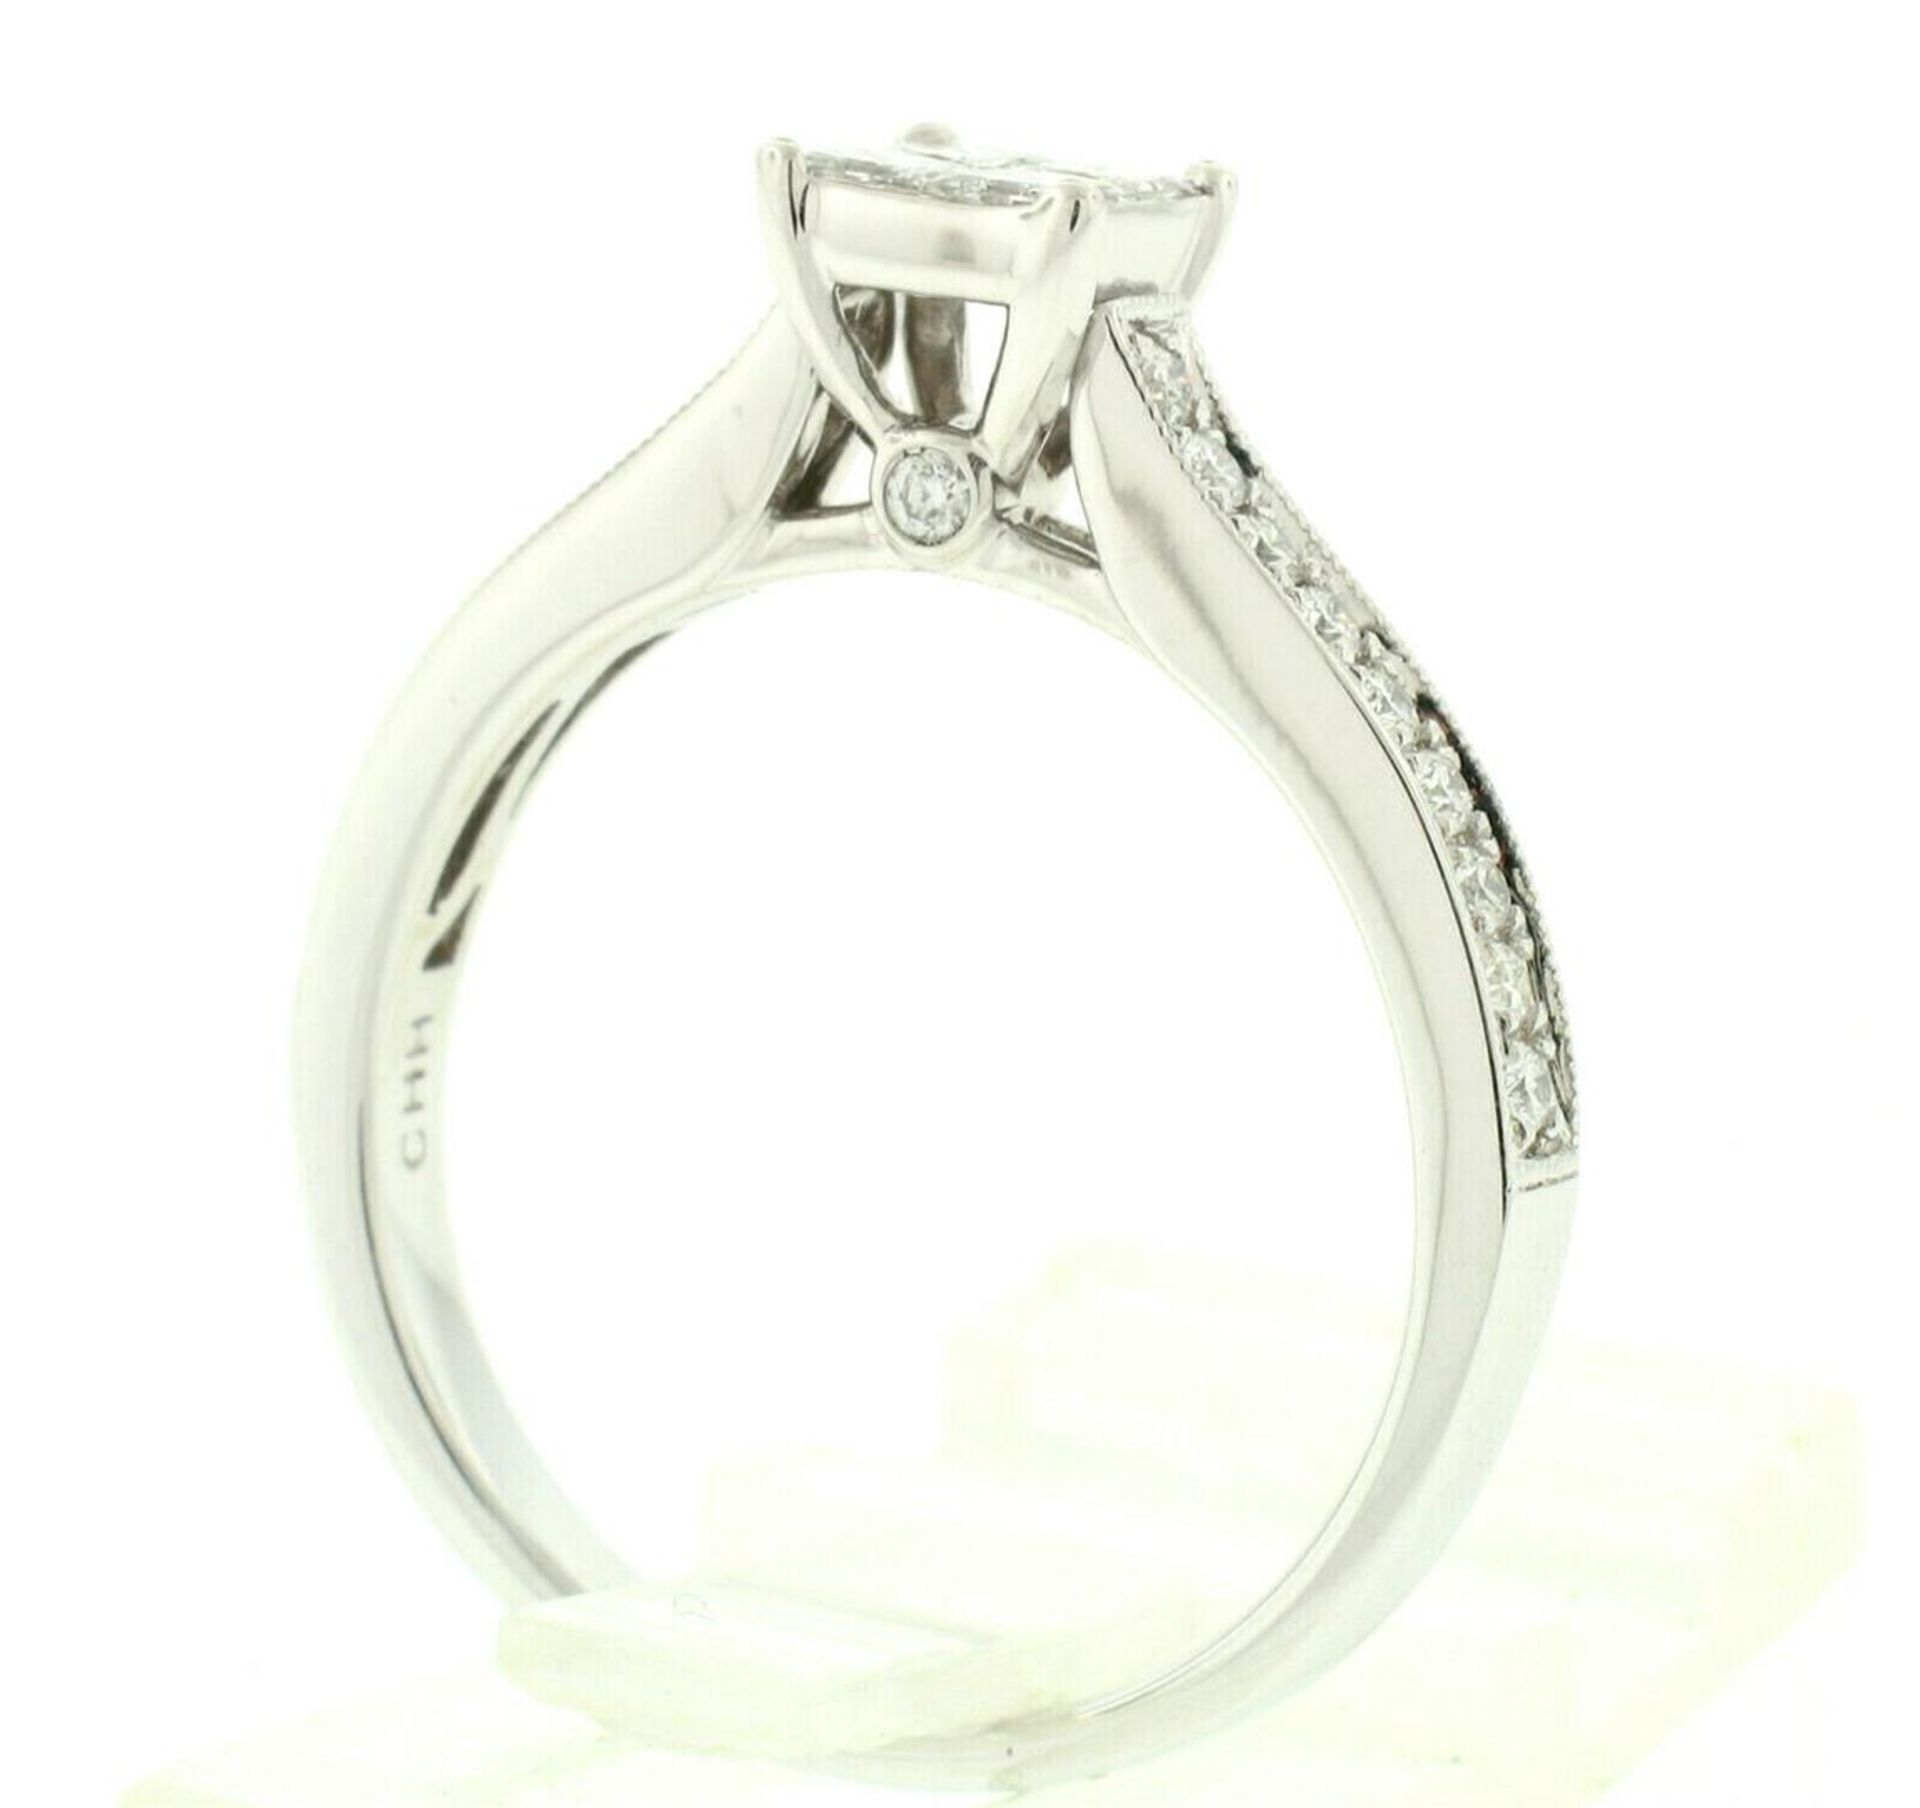 14k White Gold 0.79ctw Illusion Solitaire Princess Cut Diamond Engagement Ring - Image 6 of 8